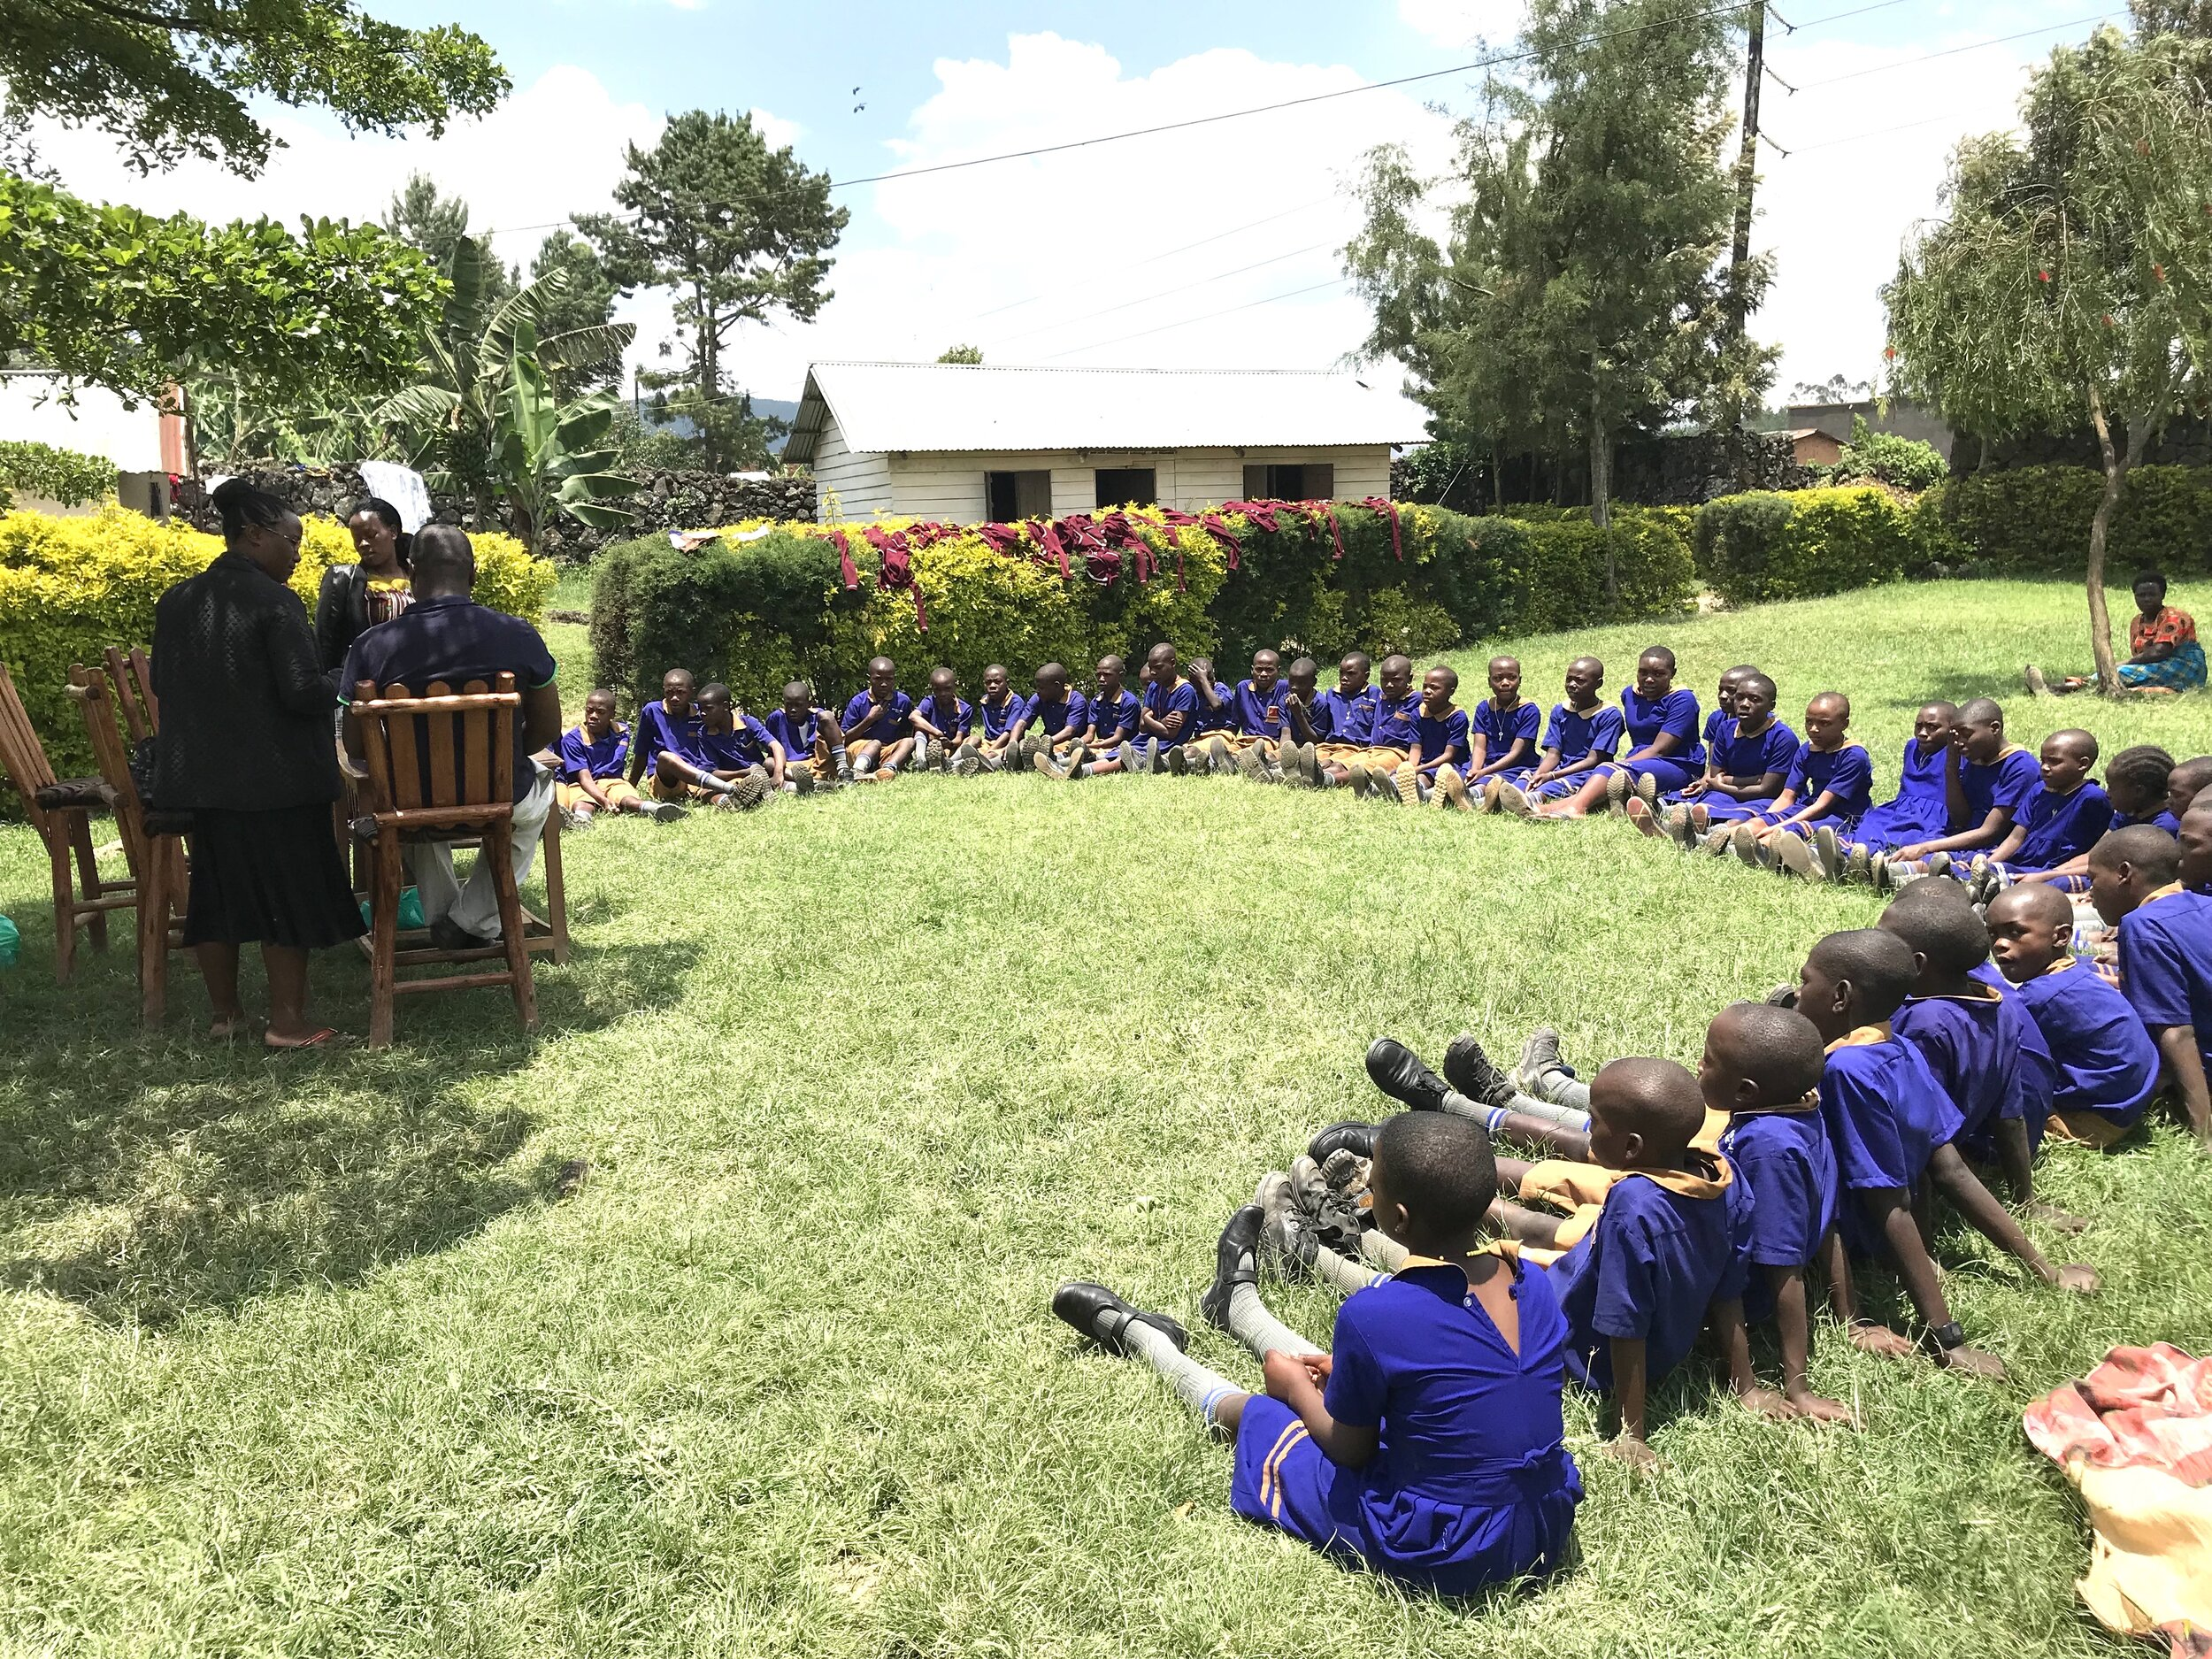 55 ACT MukoHOPE kids enrolled at Murole this year